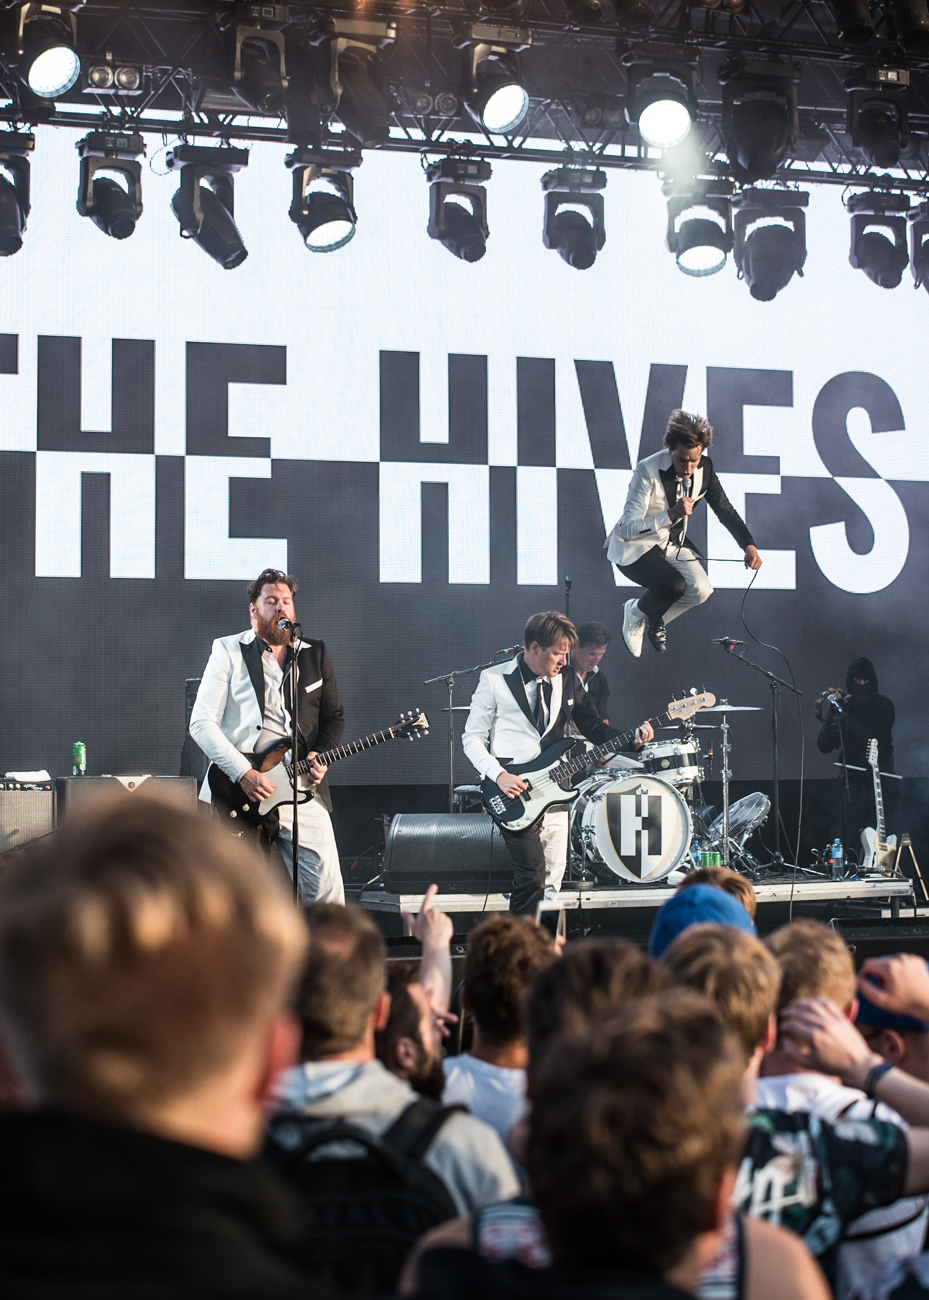 TheHives-17.jpg